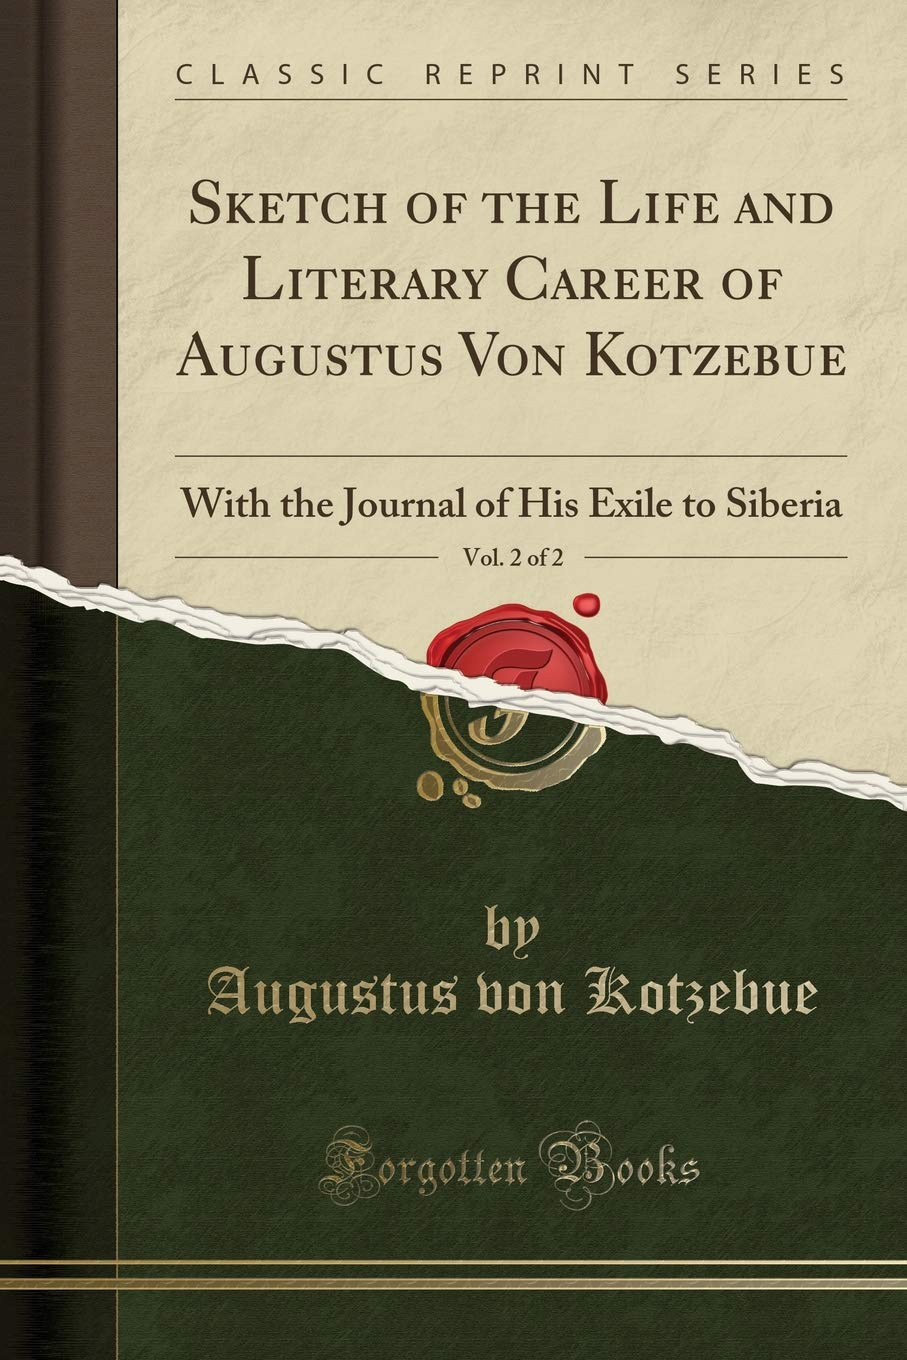 Download Sketch of the Life and Literary Career of Augustus Von Kotzebue, Vol. 2 of 2: With the Journal of His Exile to Siberia (Classic Reprint) pdf